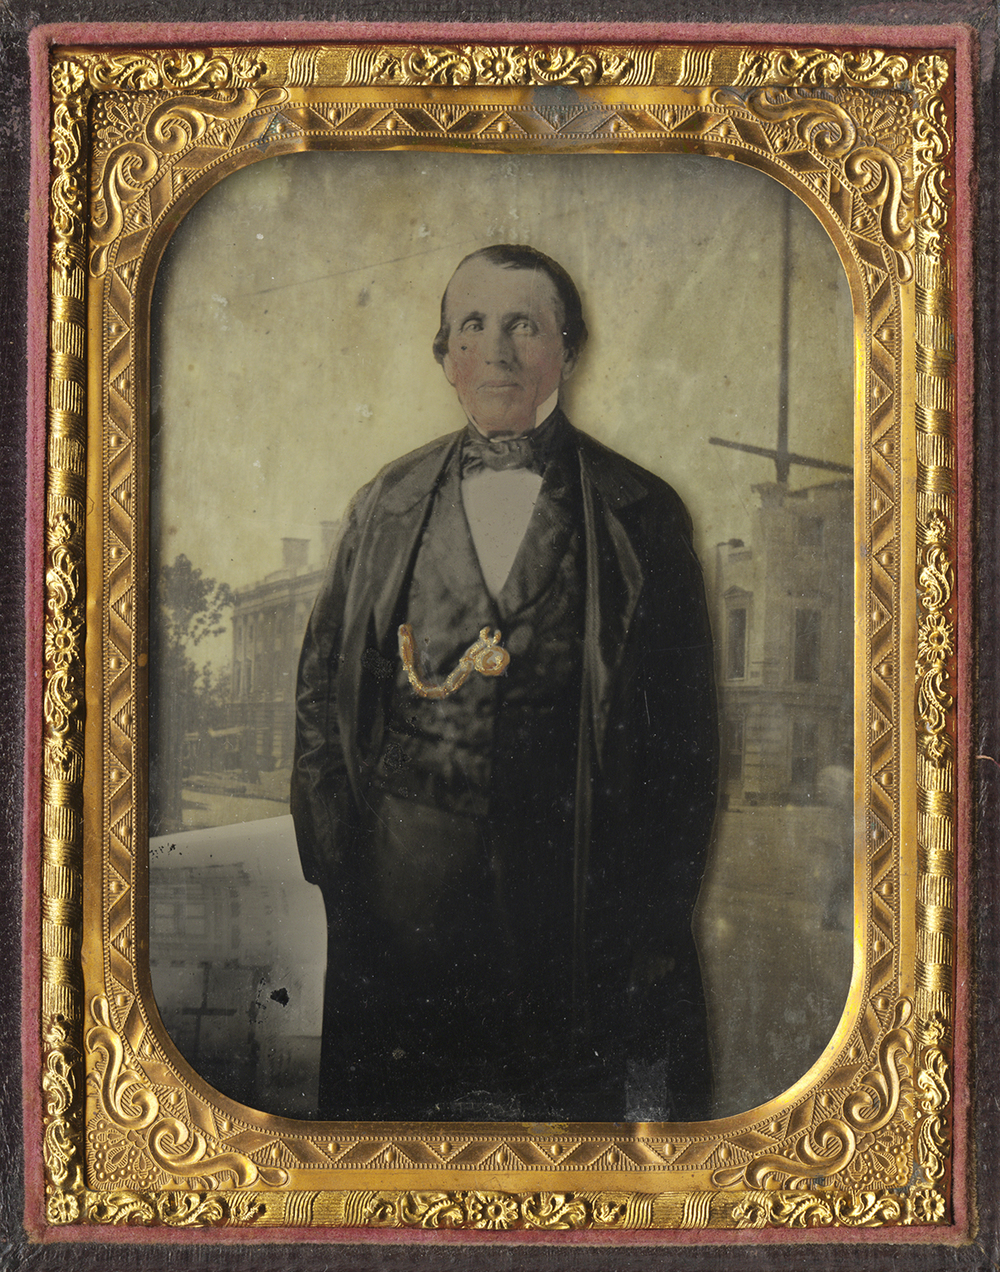 Portrait of a Gentleman, Street Scene in Background